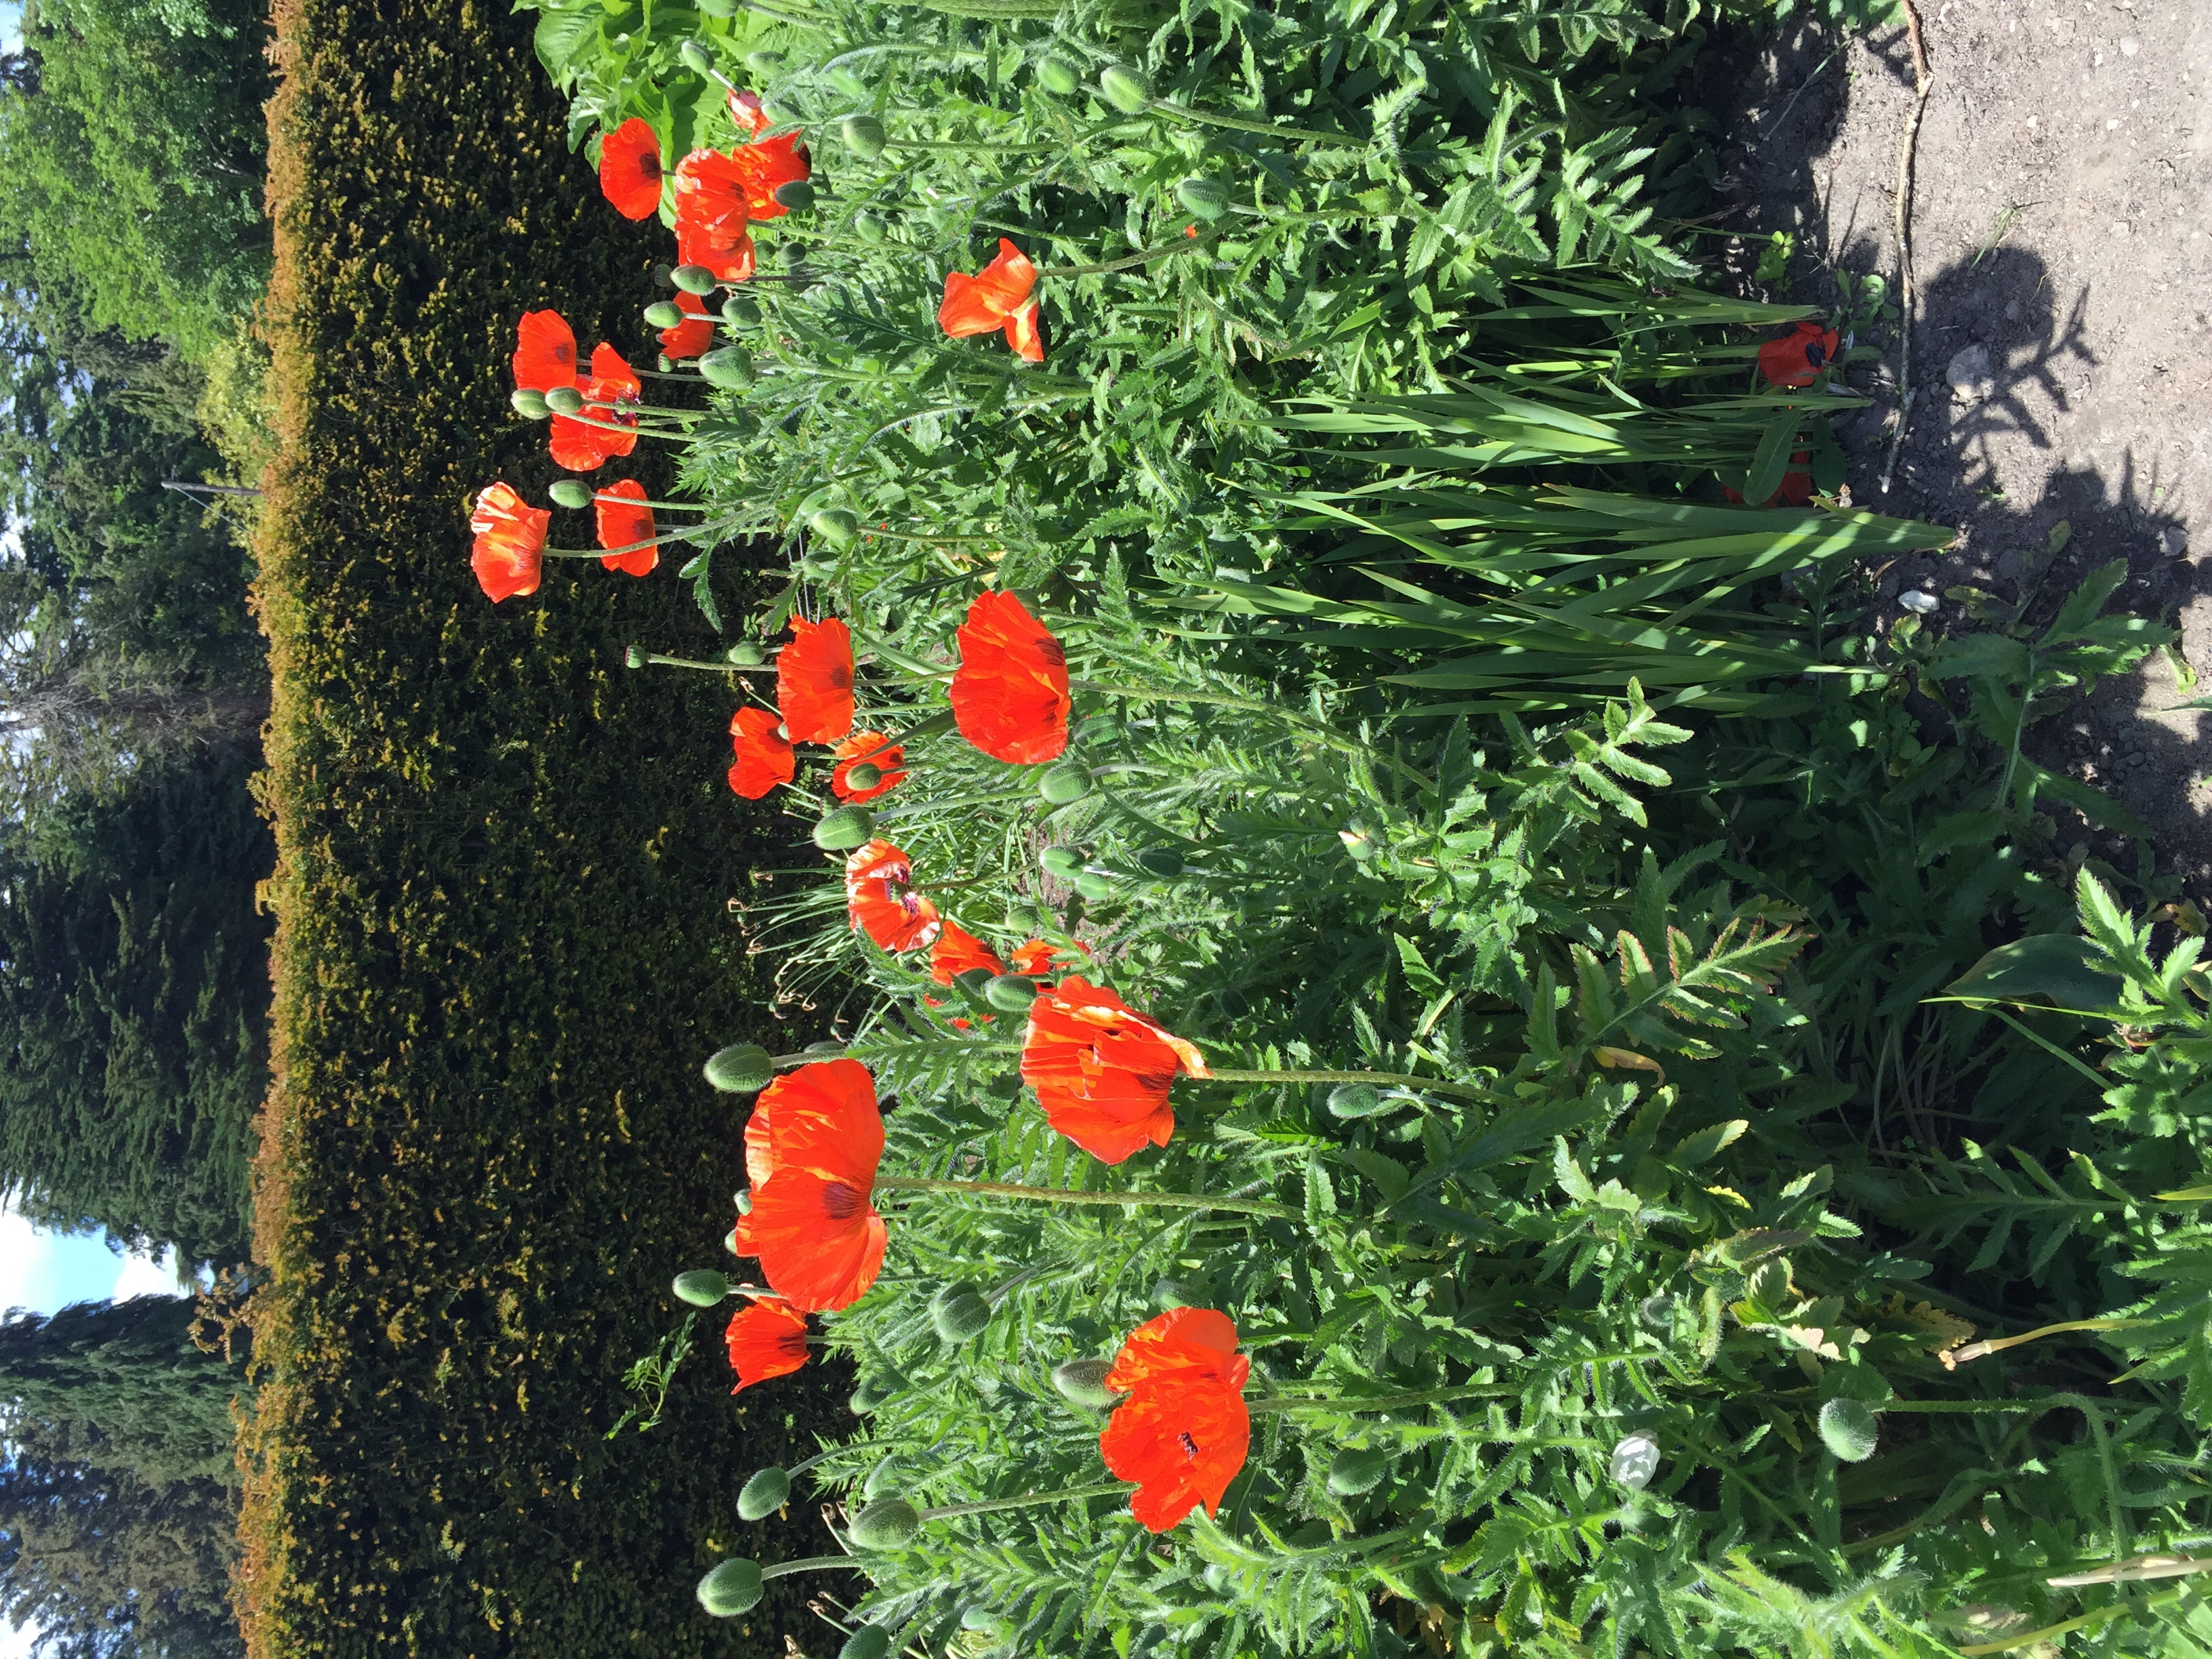 And some other flowers as well...Oriental poppies...